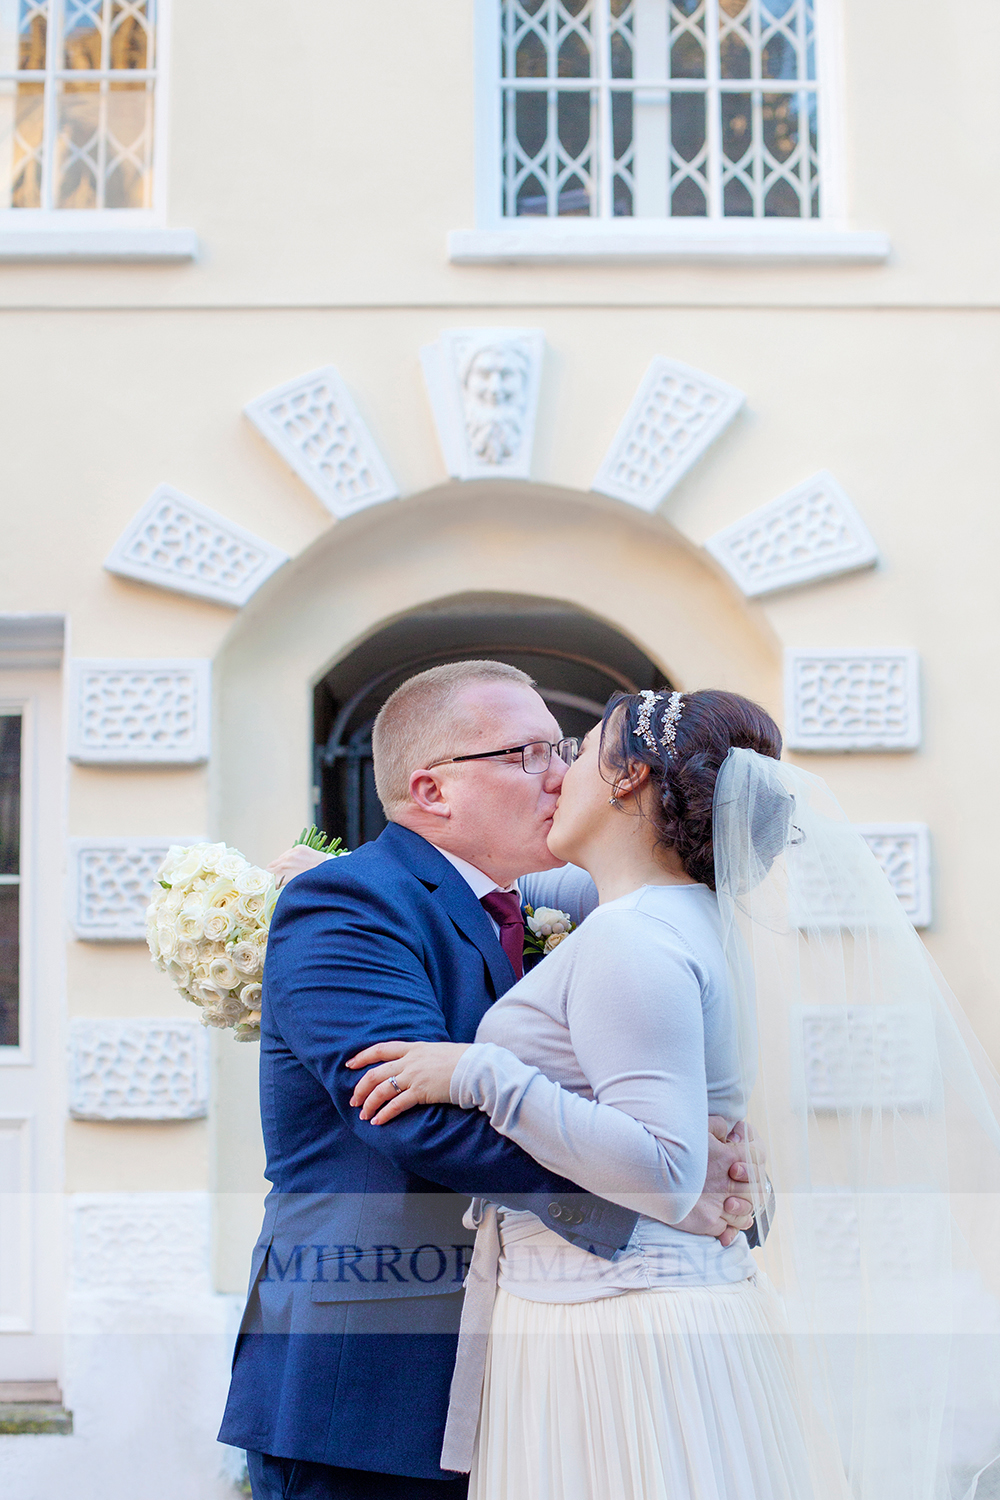 nottingham wedding photographers 36.jpg